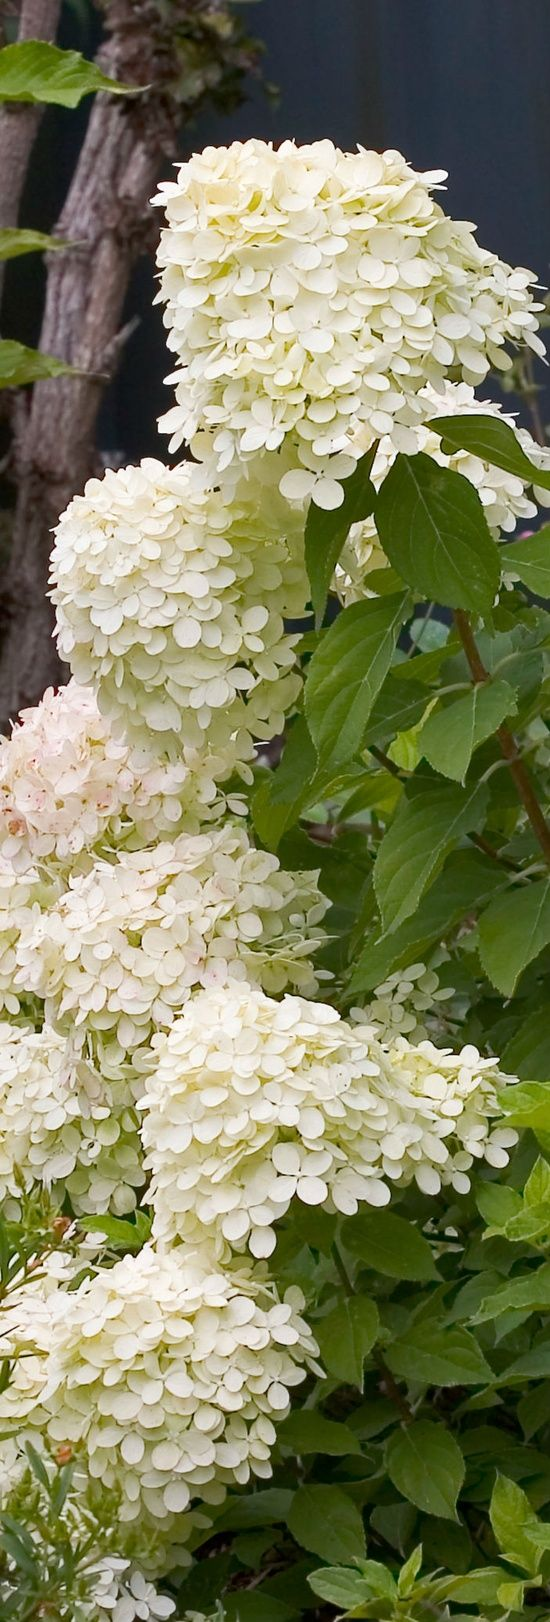 Hydrangeas (probably Hydrangea paniculata 'Limelight')